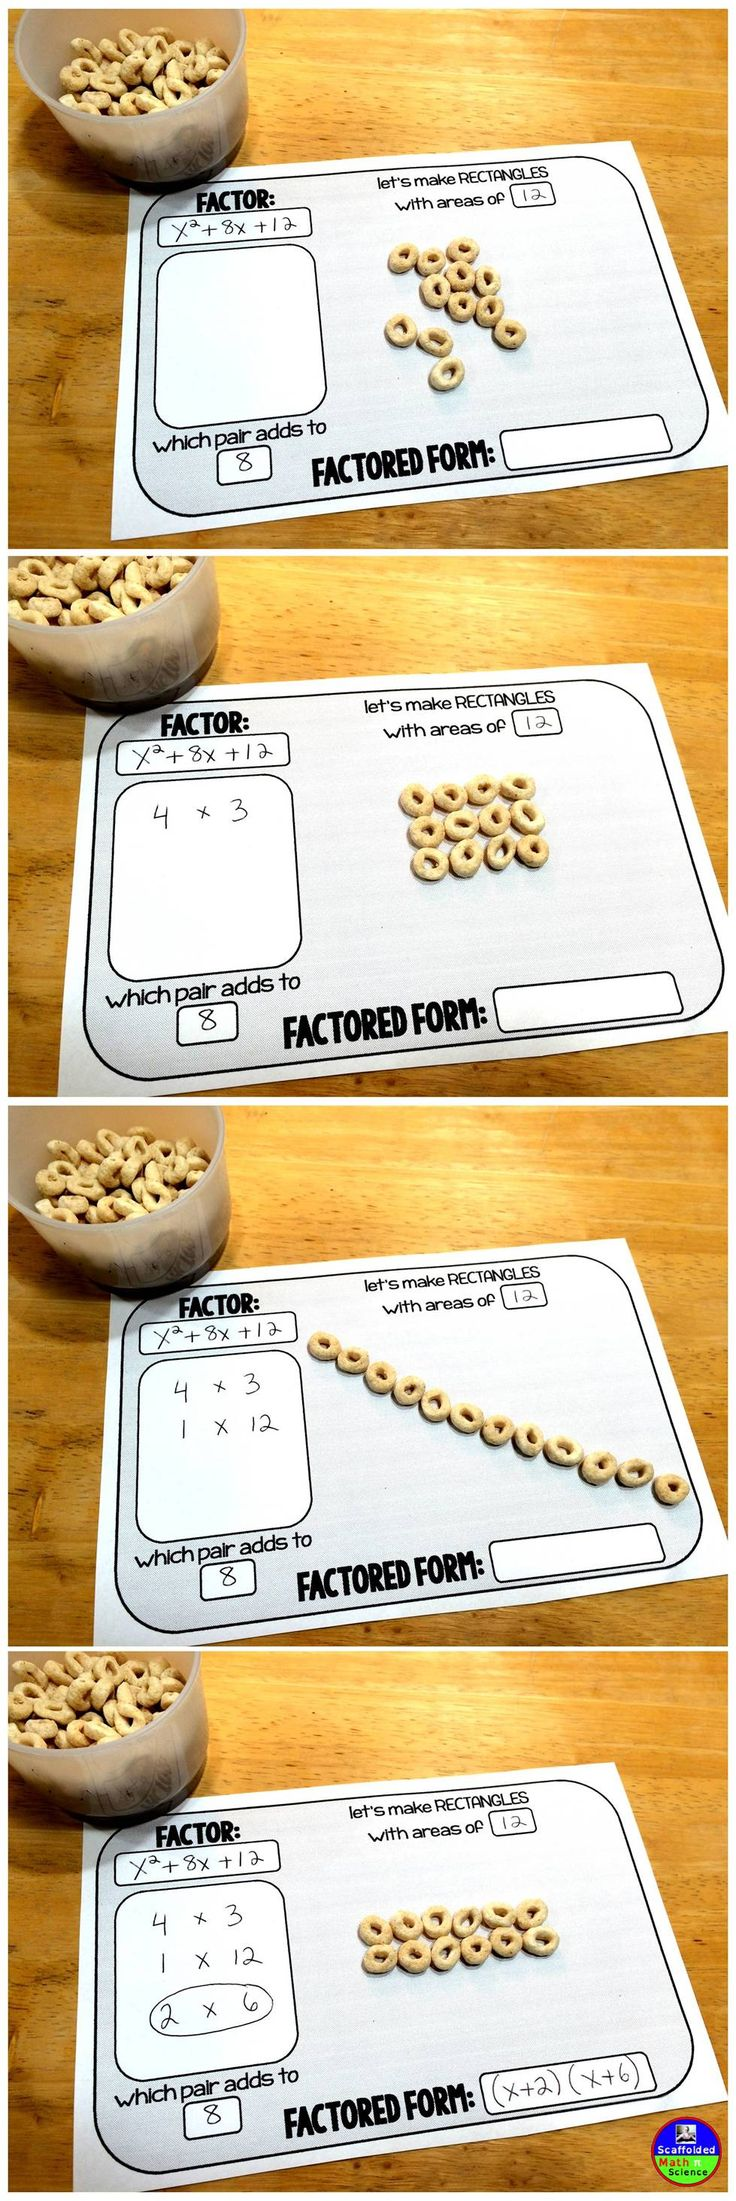 Using cereal to introduce FACTORING trinomials in Algebra. -         Repinned by Chesapeake College Adult Ed. We offer free classes on the Eastern Shore of MD to help you earn your GED - H.S. Diploma or Learn English (ESL) .   For GED classes contact Danielle Thomas 410-829-6043 dthomas@chesapeke.edu  For ESL classes contact Karen Luceti - 410-443-1163  Kluceti@chesapeake.edu .  www.chesapeake.edu